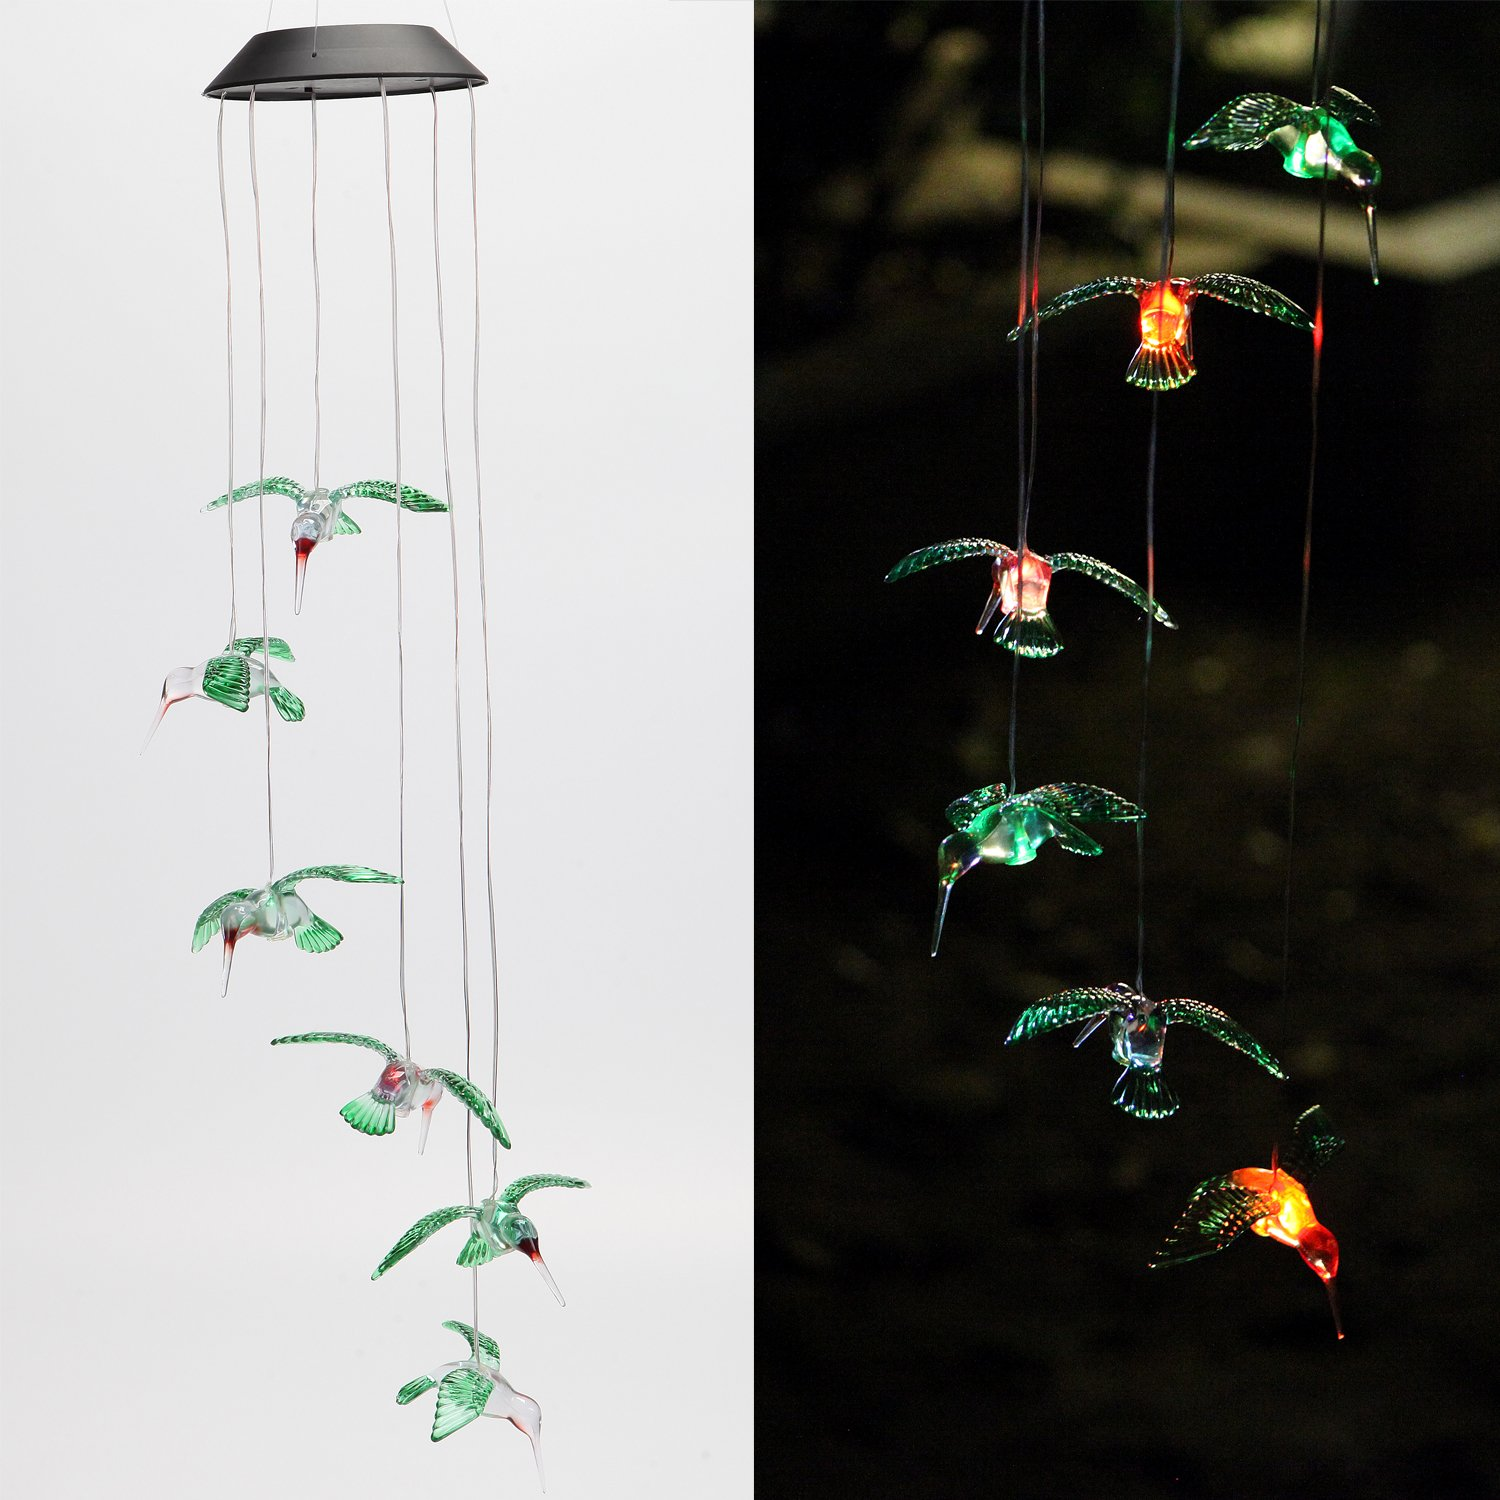 Isyunen Solar Six Hummingbird Wind Chimes Color-Changing Outdoor Waterproof Led Windlights for Home, Party,Night, Garden, Yard Decoration,Festival Decor,Valentines Gift (Colored Hummingbird)